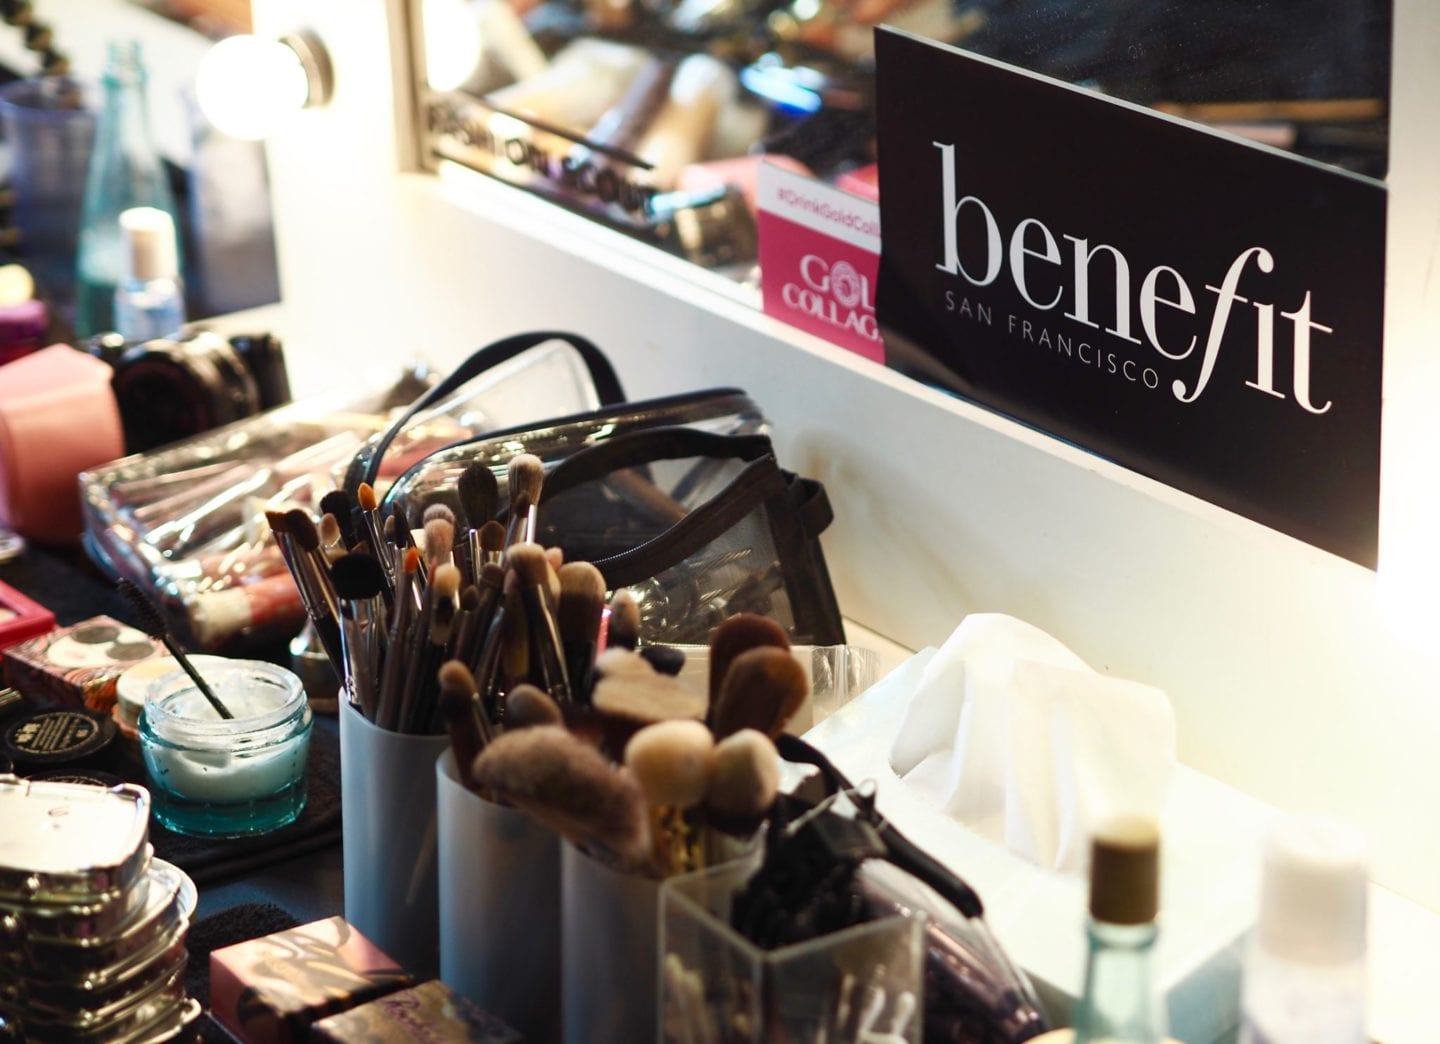 Backstage-at-LFW-With-Hellavagirl-X-Benefit-Cosmetics-make-up-goals